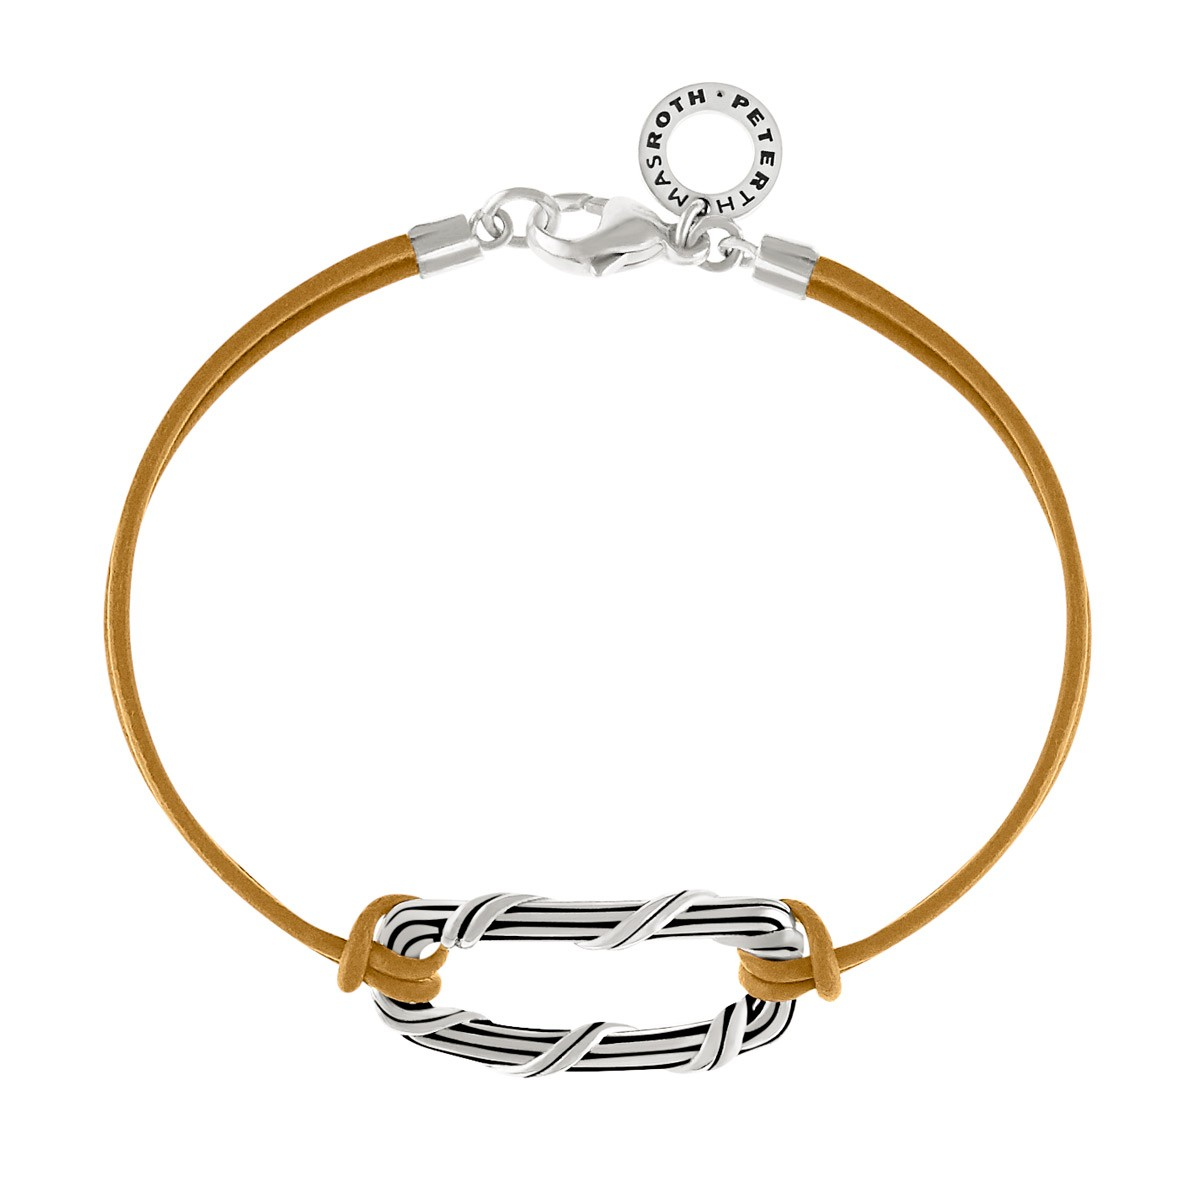 Rectangle Link Bracelet in sterling silver and metallic gold leather